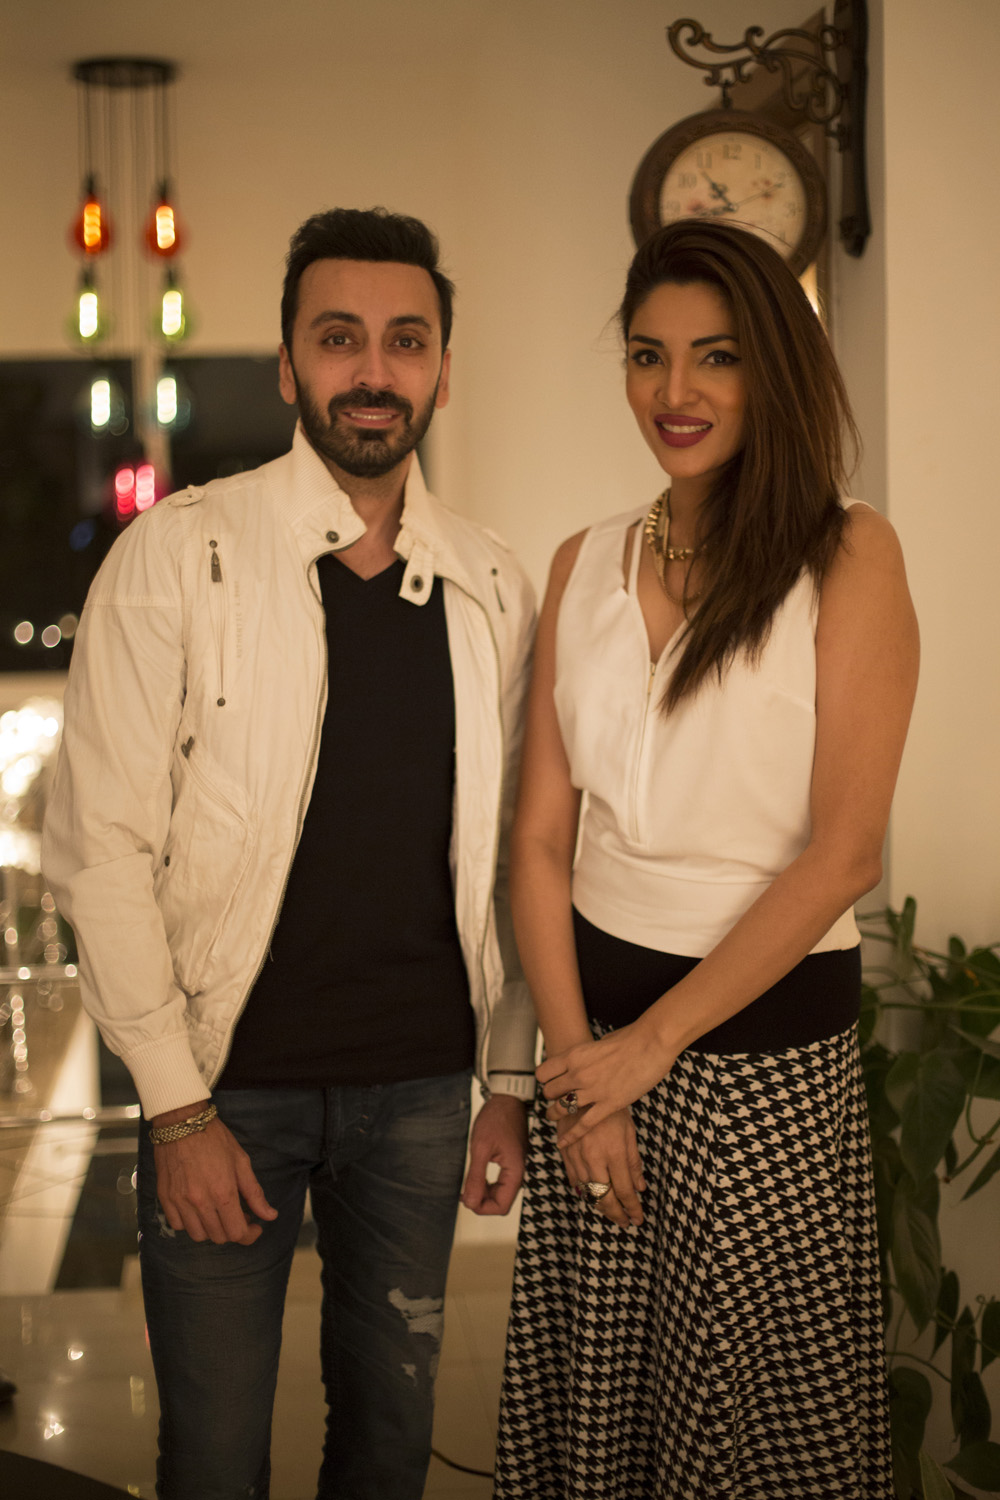 Amir Anees, Zhalay Sarhadi